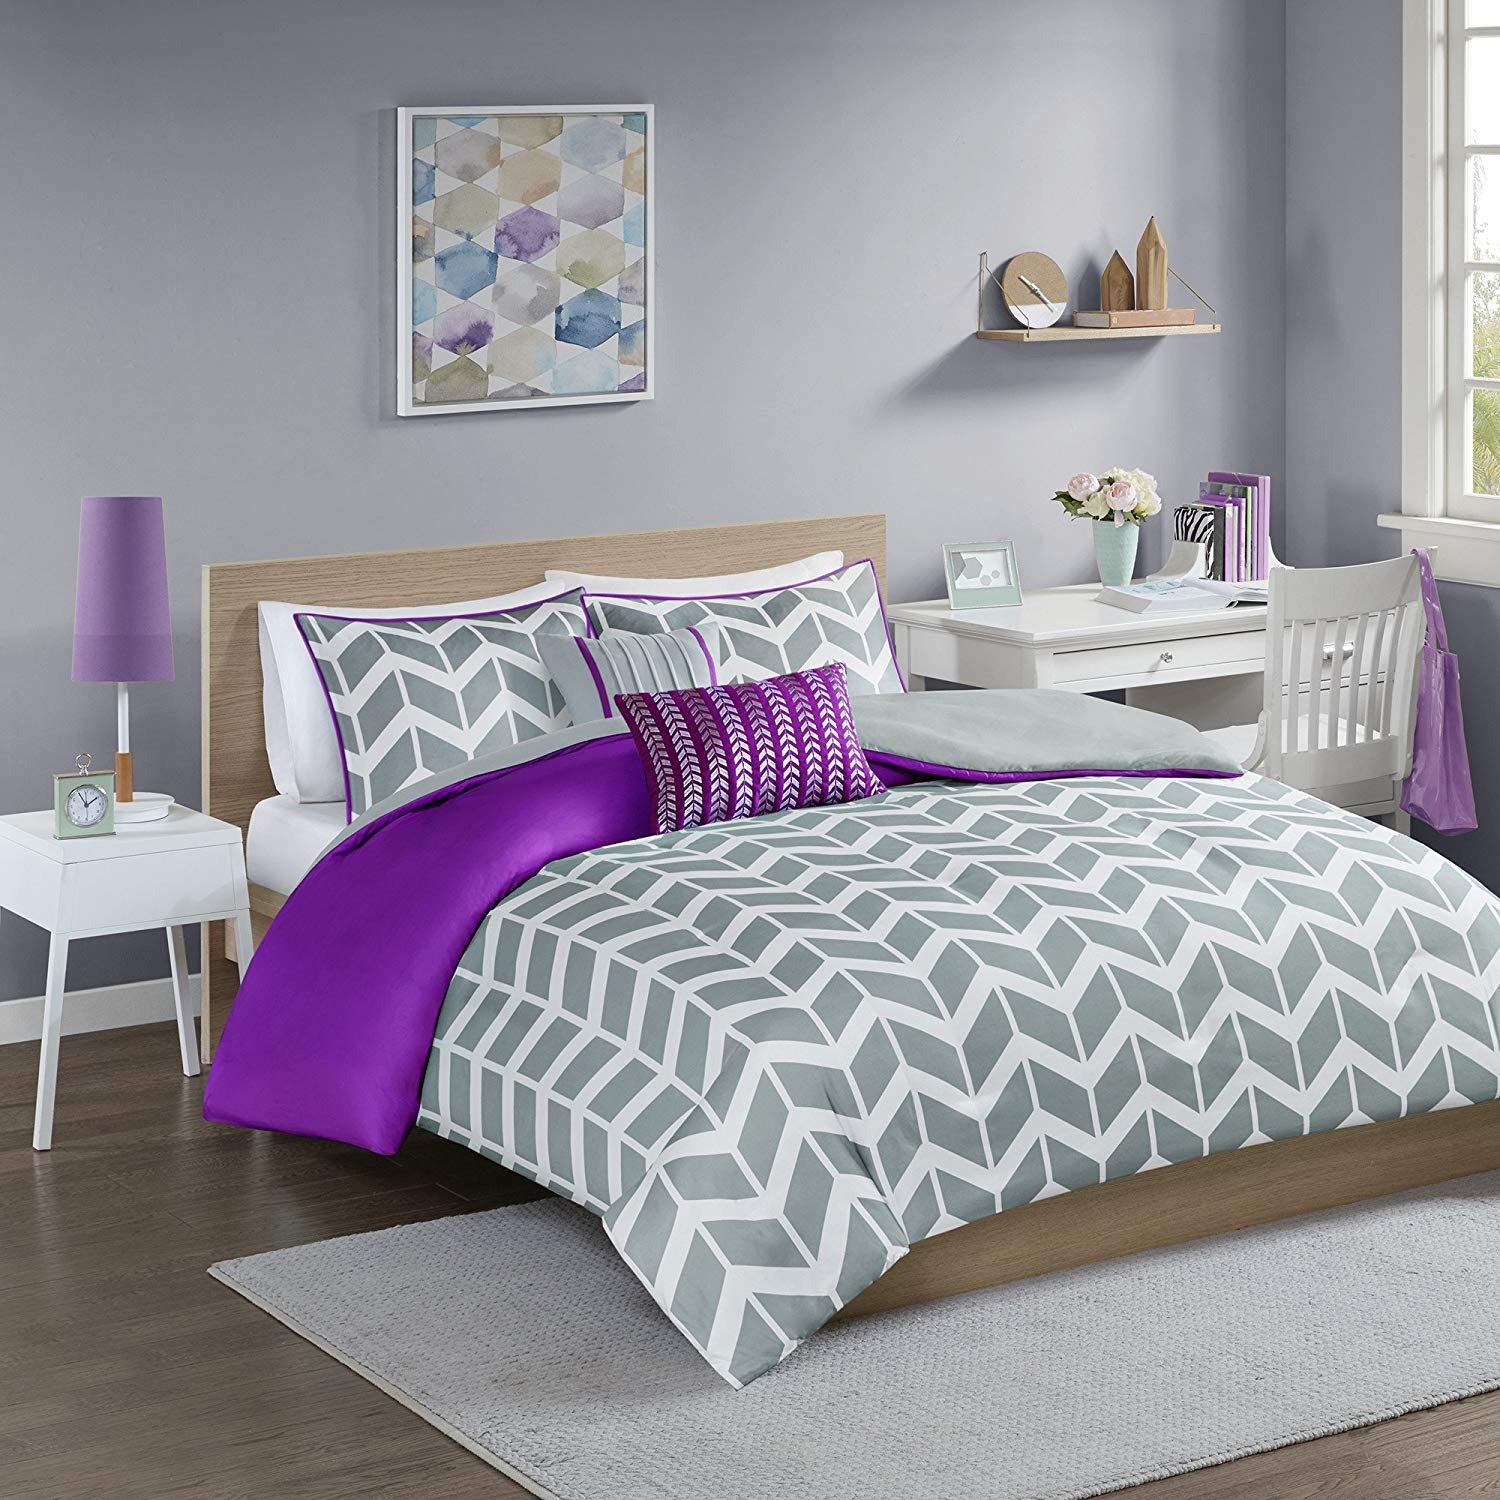 5 Piece Purple Grey Chevron Duvet Cover Full Queen Set, Beautiful Stylish Zig Zag Stripes Reversible Bedding Gray White Hippie Fun Geometric Vertical Stripe Design, Modern Style, Ultra-Soft Polyester